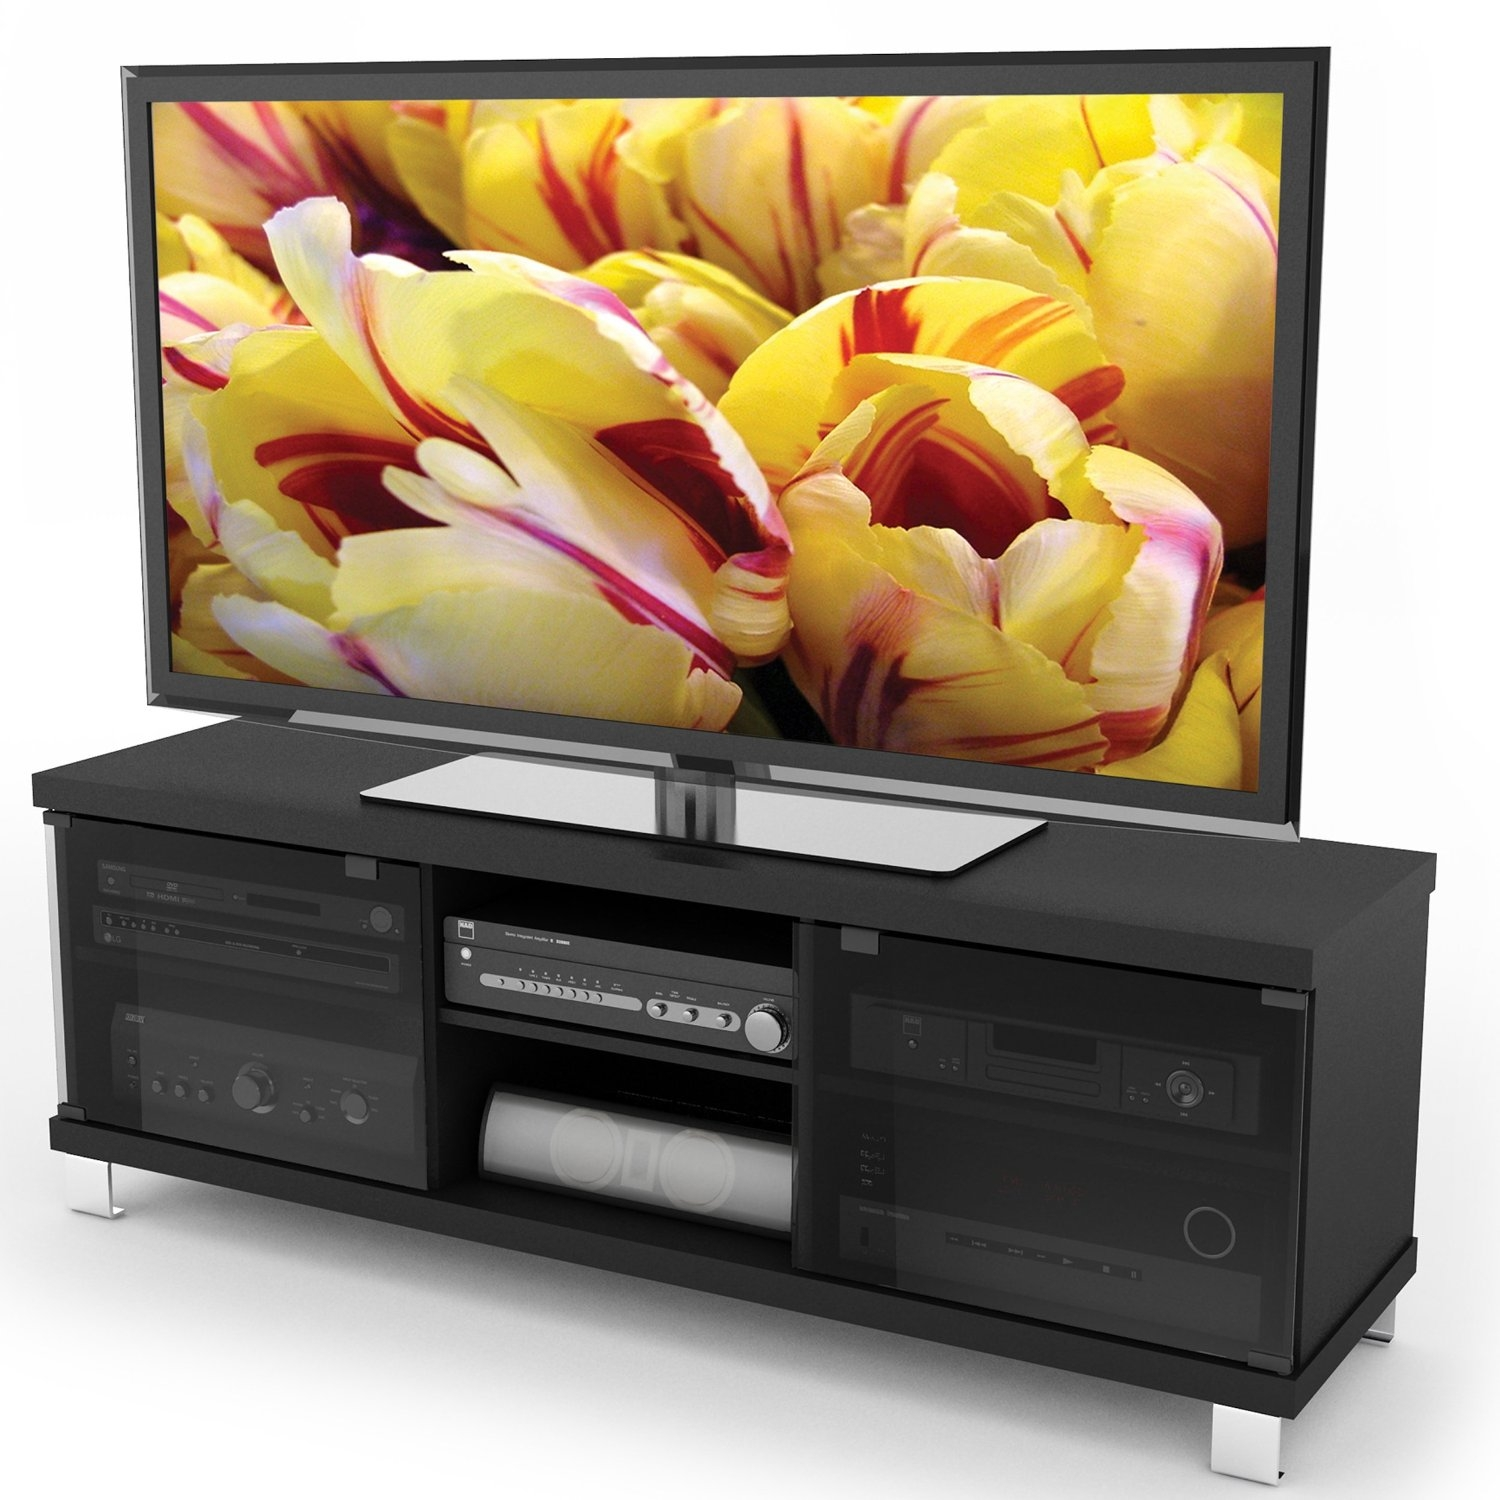 Modern Black Tv Stand With Glass Doors Fits Up To 68 Inch Tv Fastfurnishings Com